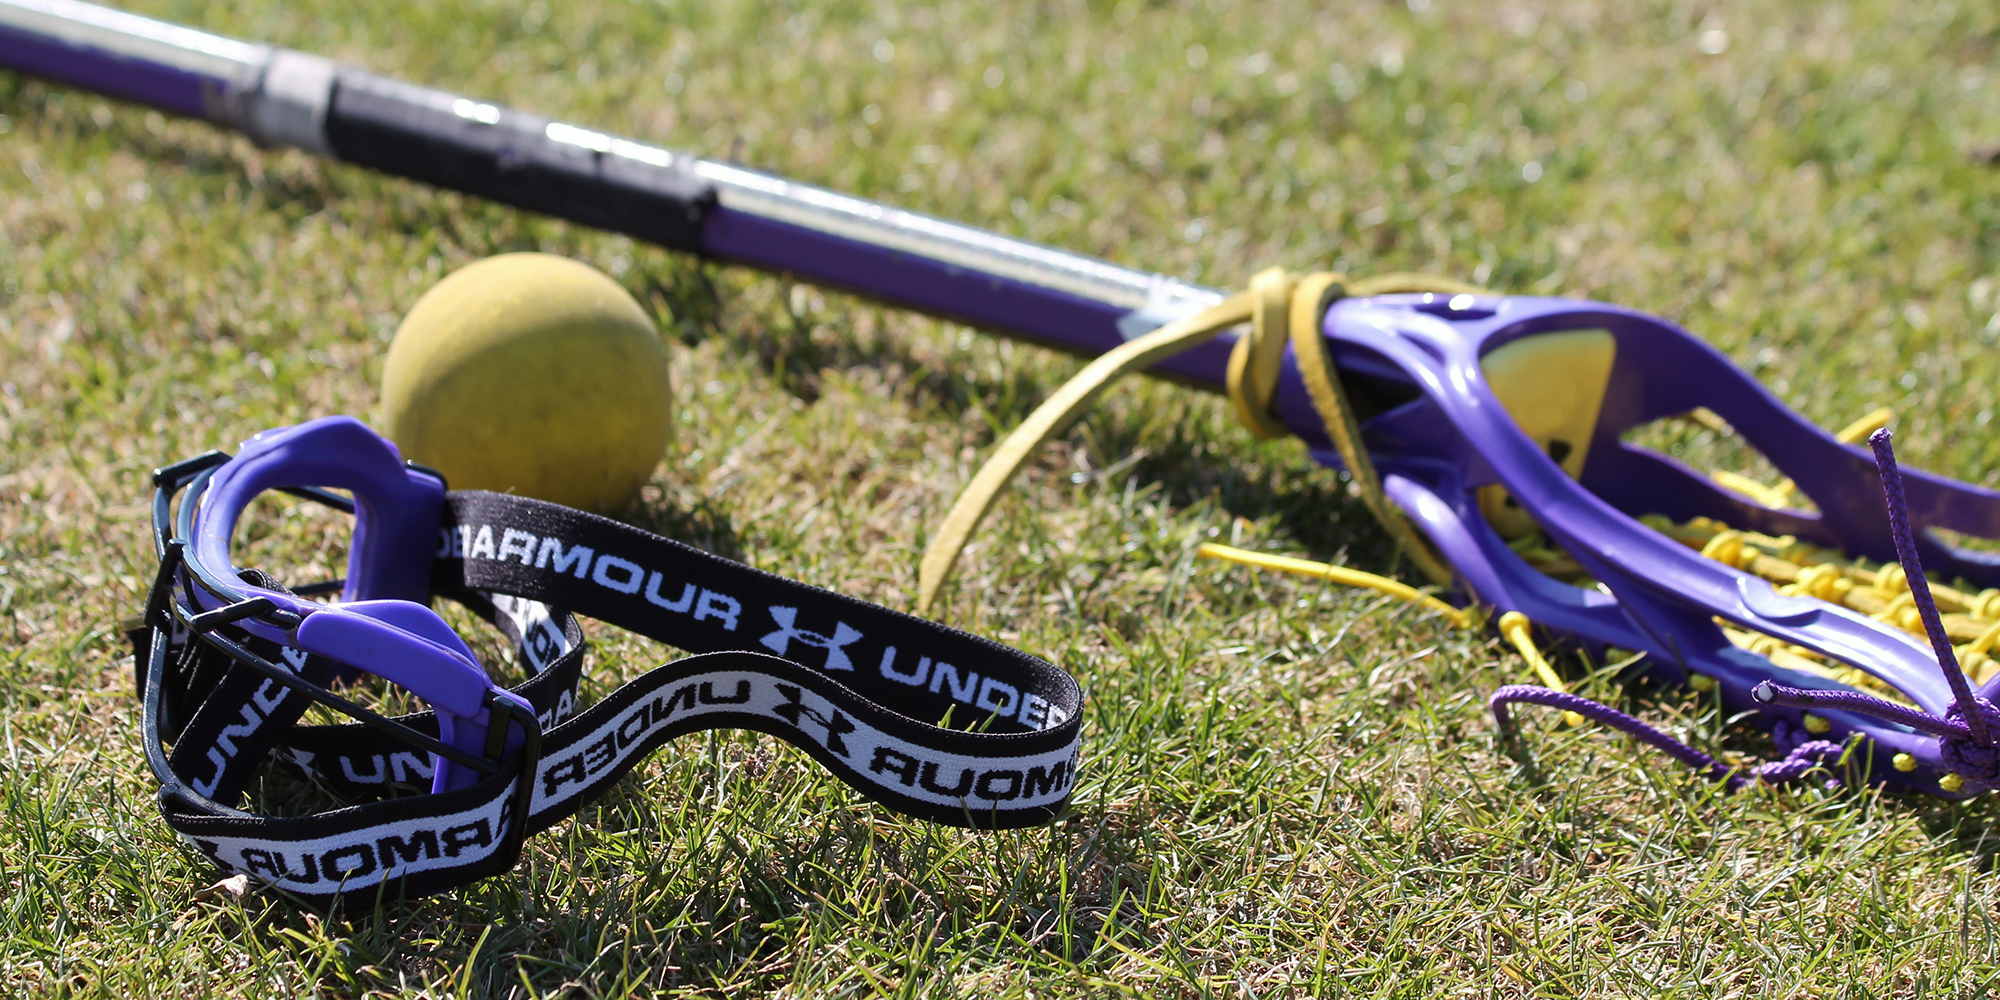 Lacrosse_stick_and_ball_front